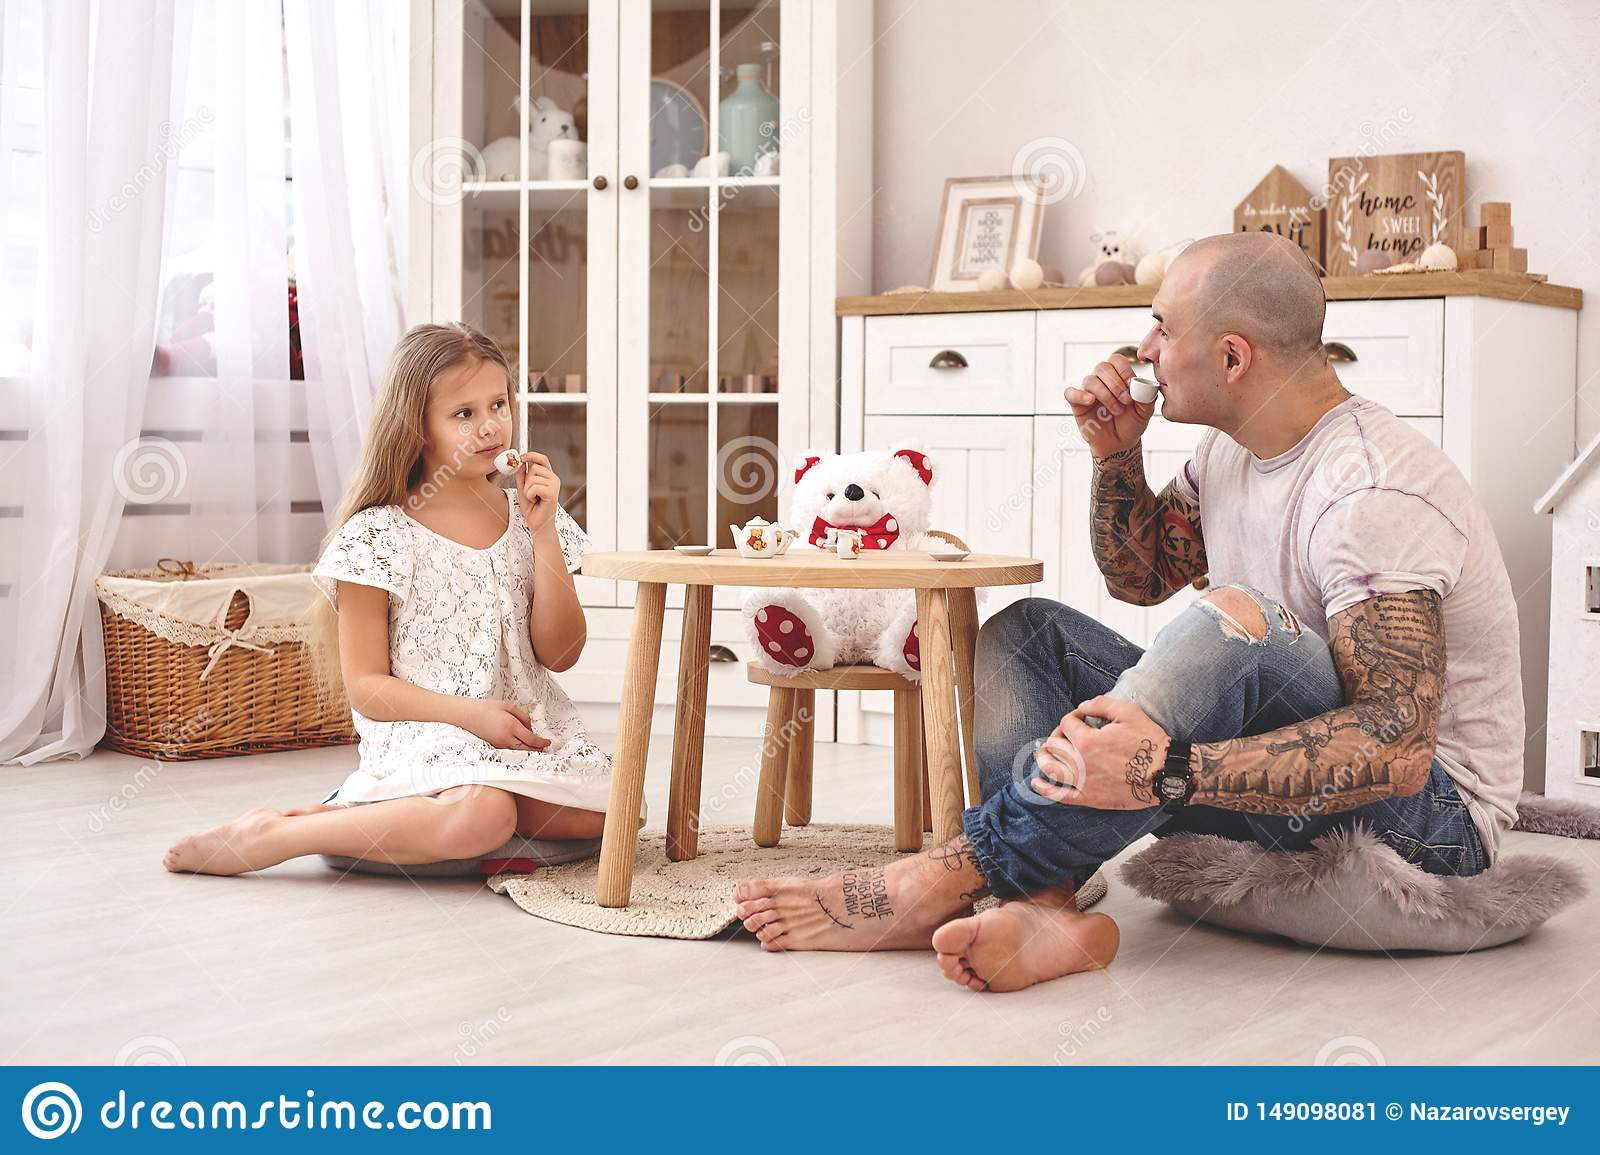 Adorable daughter wearing a white dress whith her loving father. They are drinking tea from a toy dishes in a modern kid